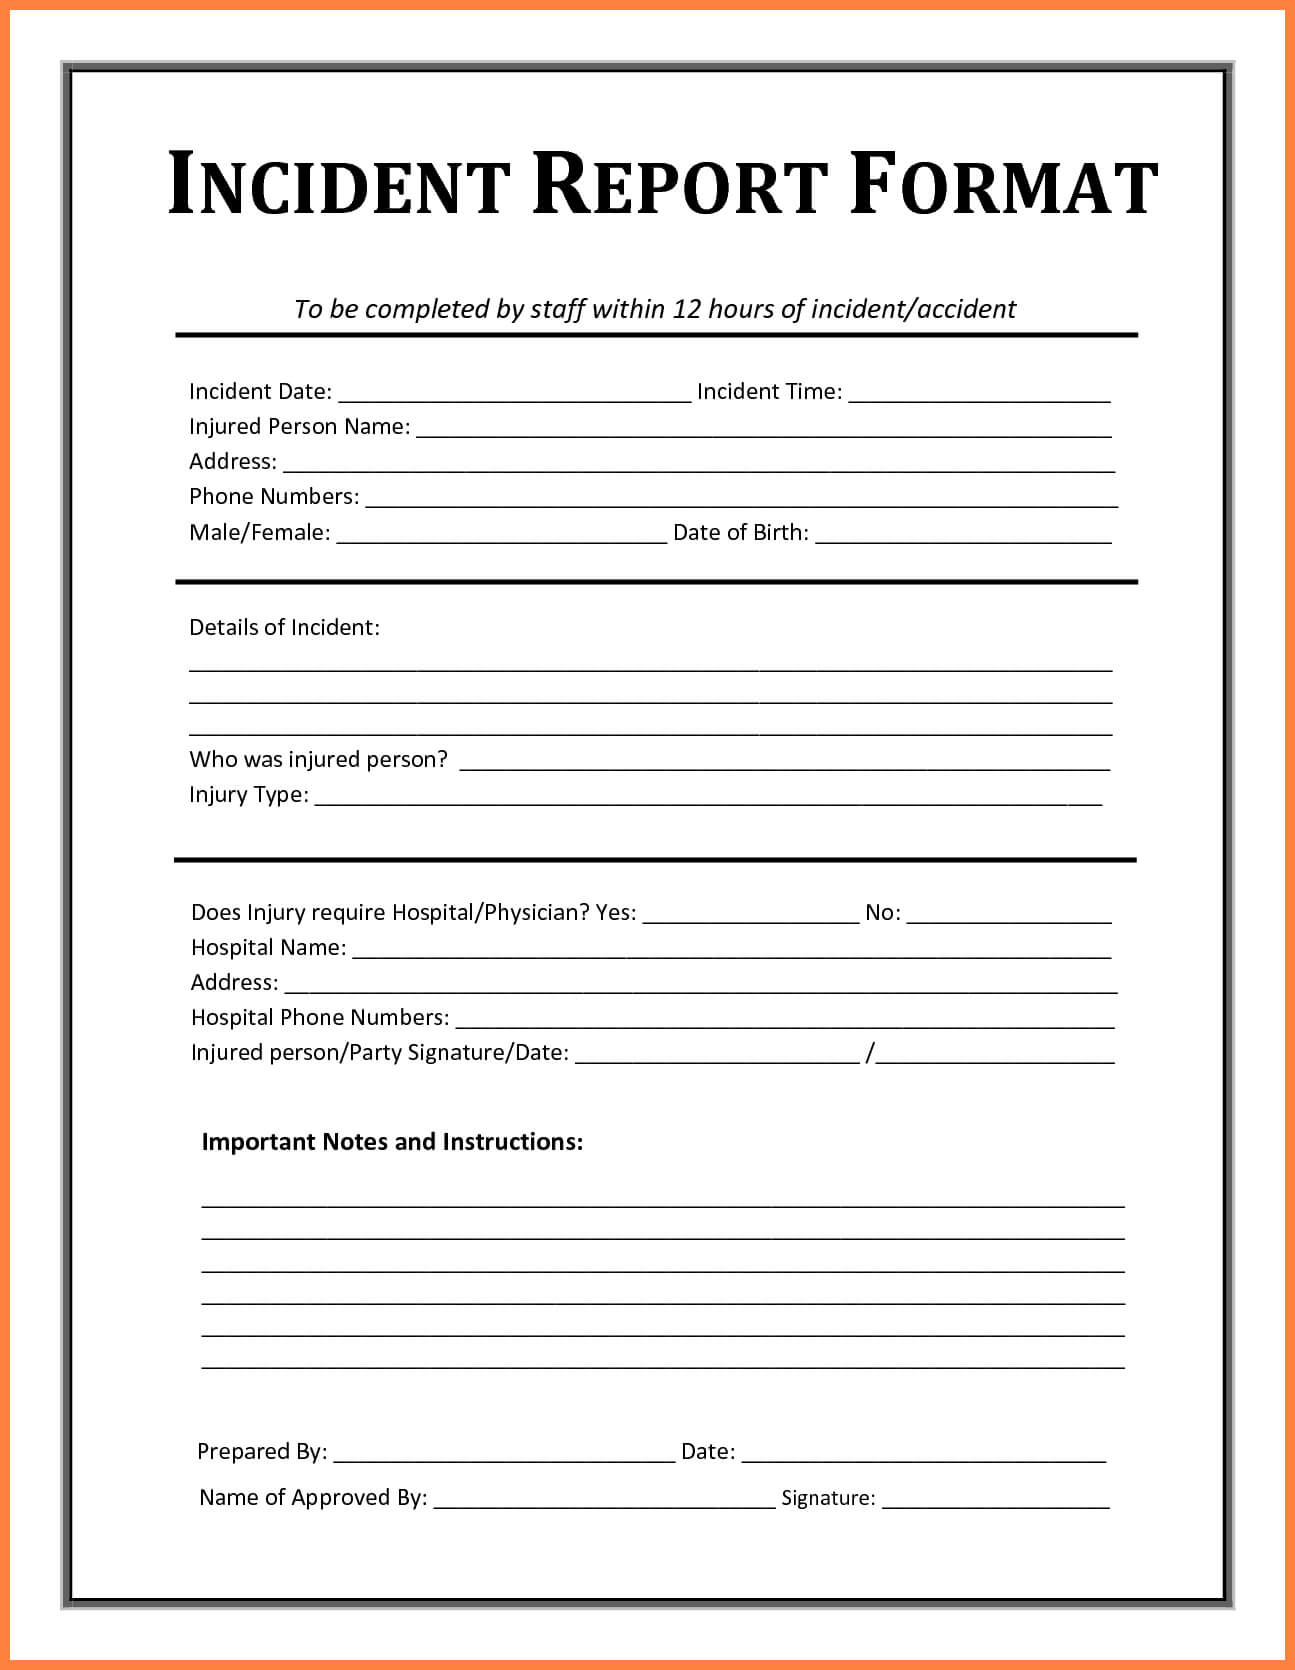 Incident Report Template - Free Incident Report Templates Regarding Ohs Incident Report Template Free